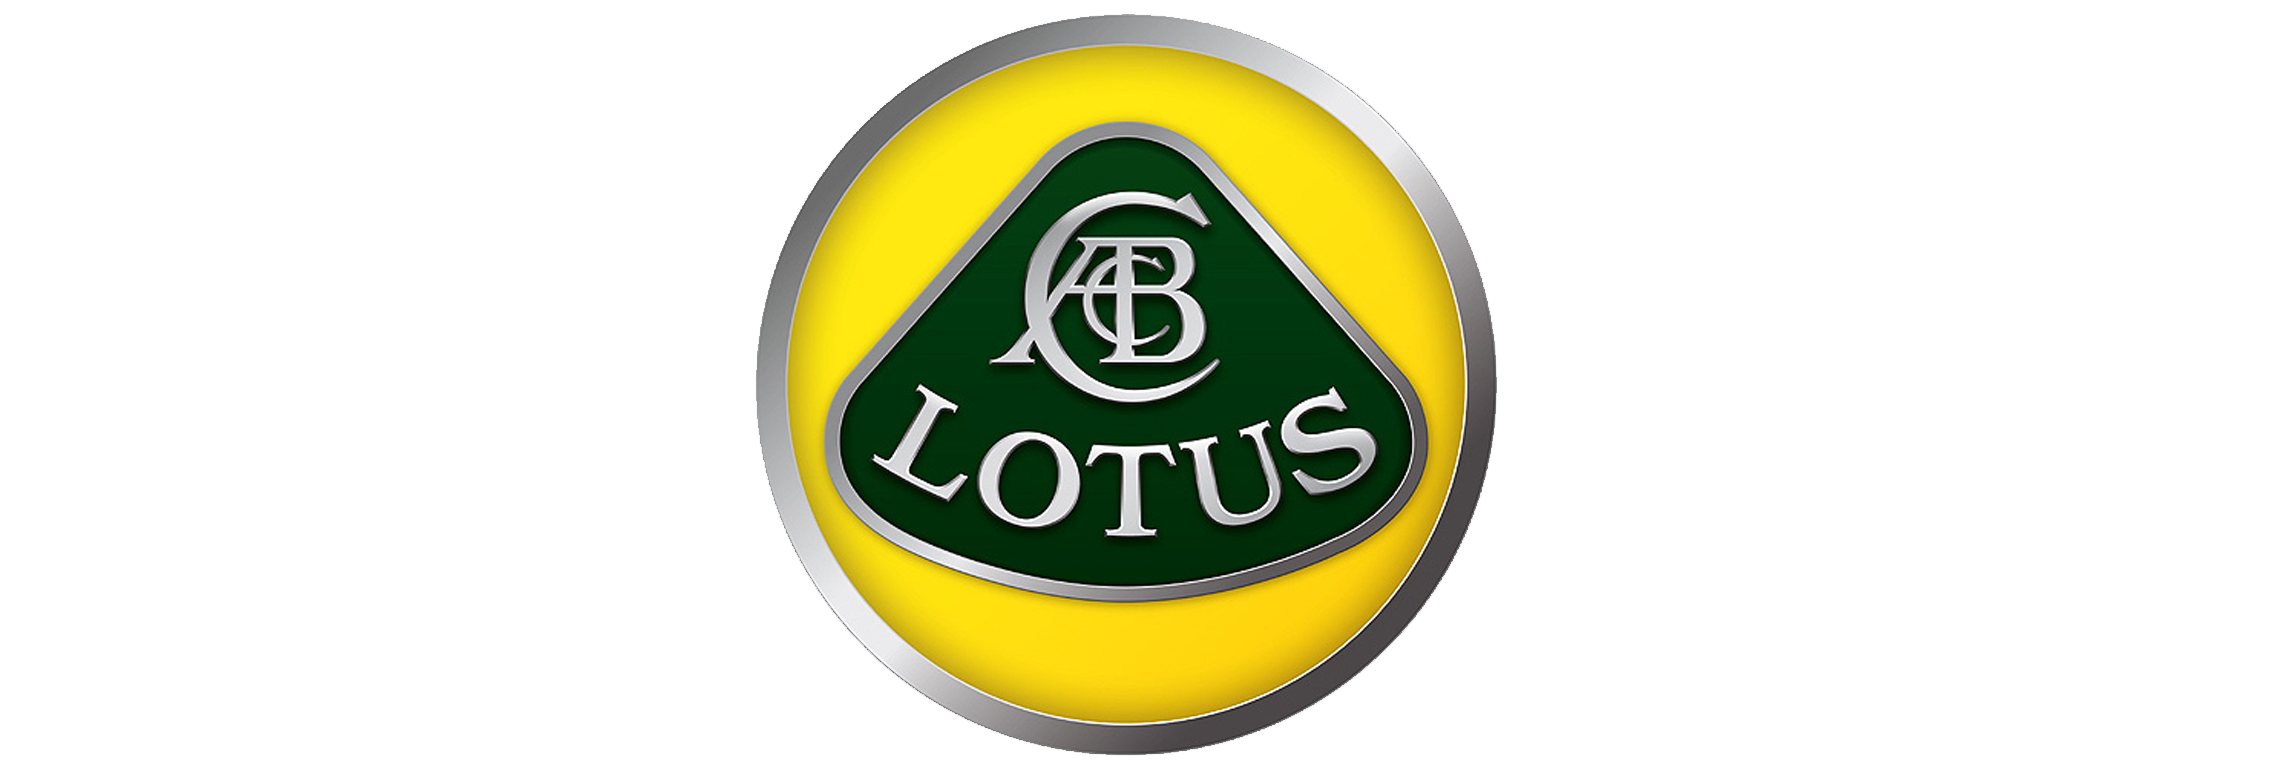 Lotus logo png. Meaning and history latest